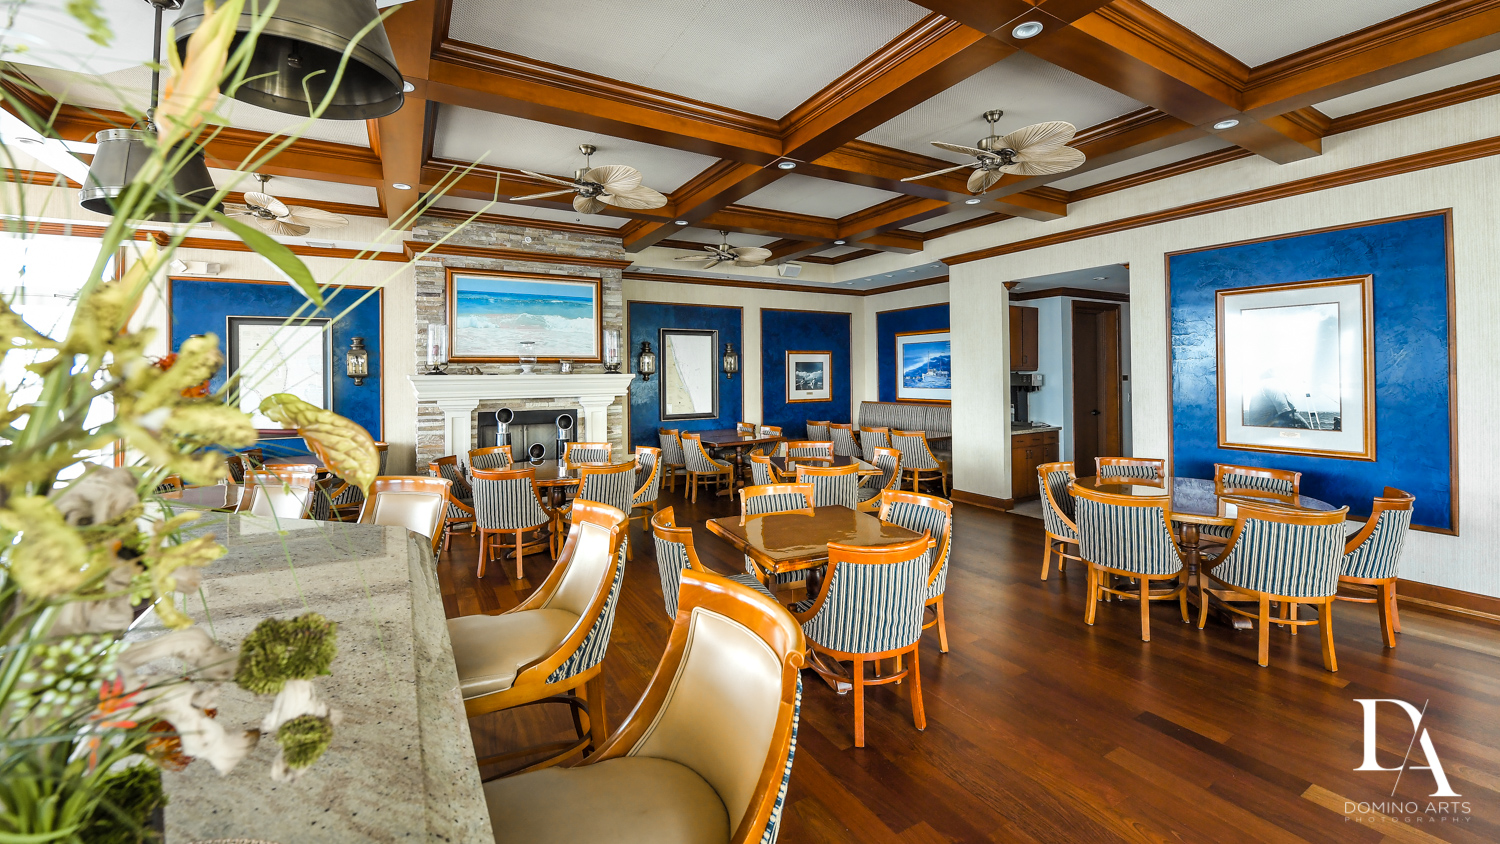 rustic decor at Harborage Yacht Club & Marina by Domino Arts Photography